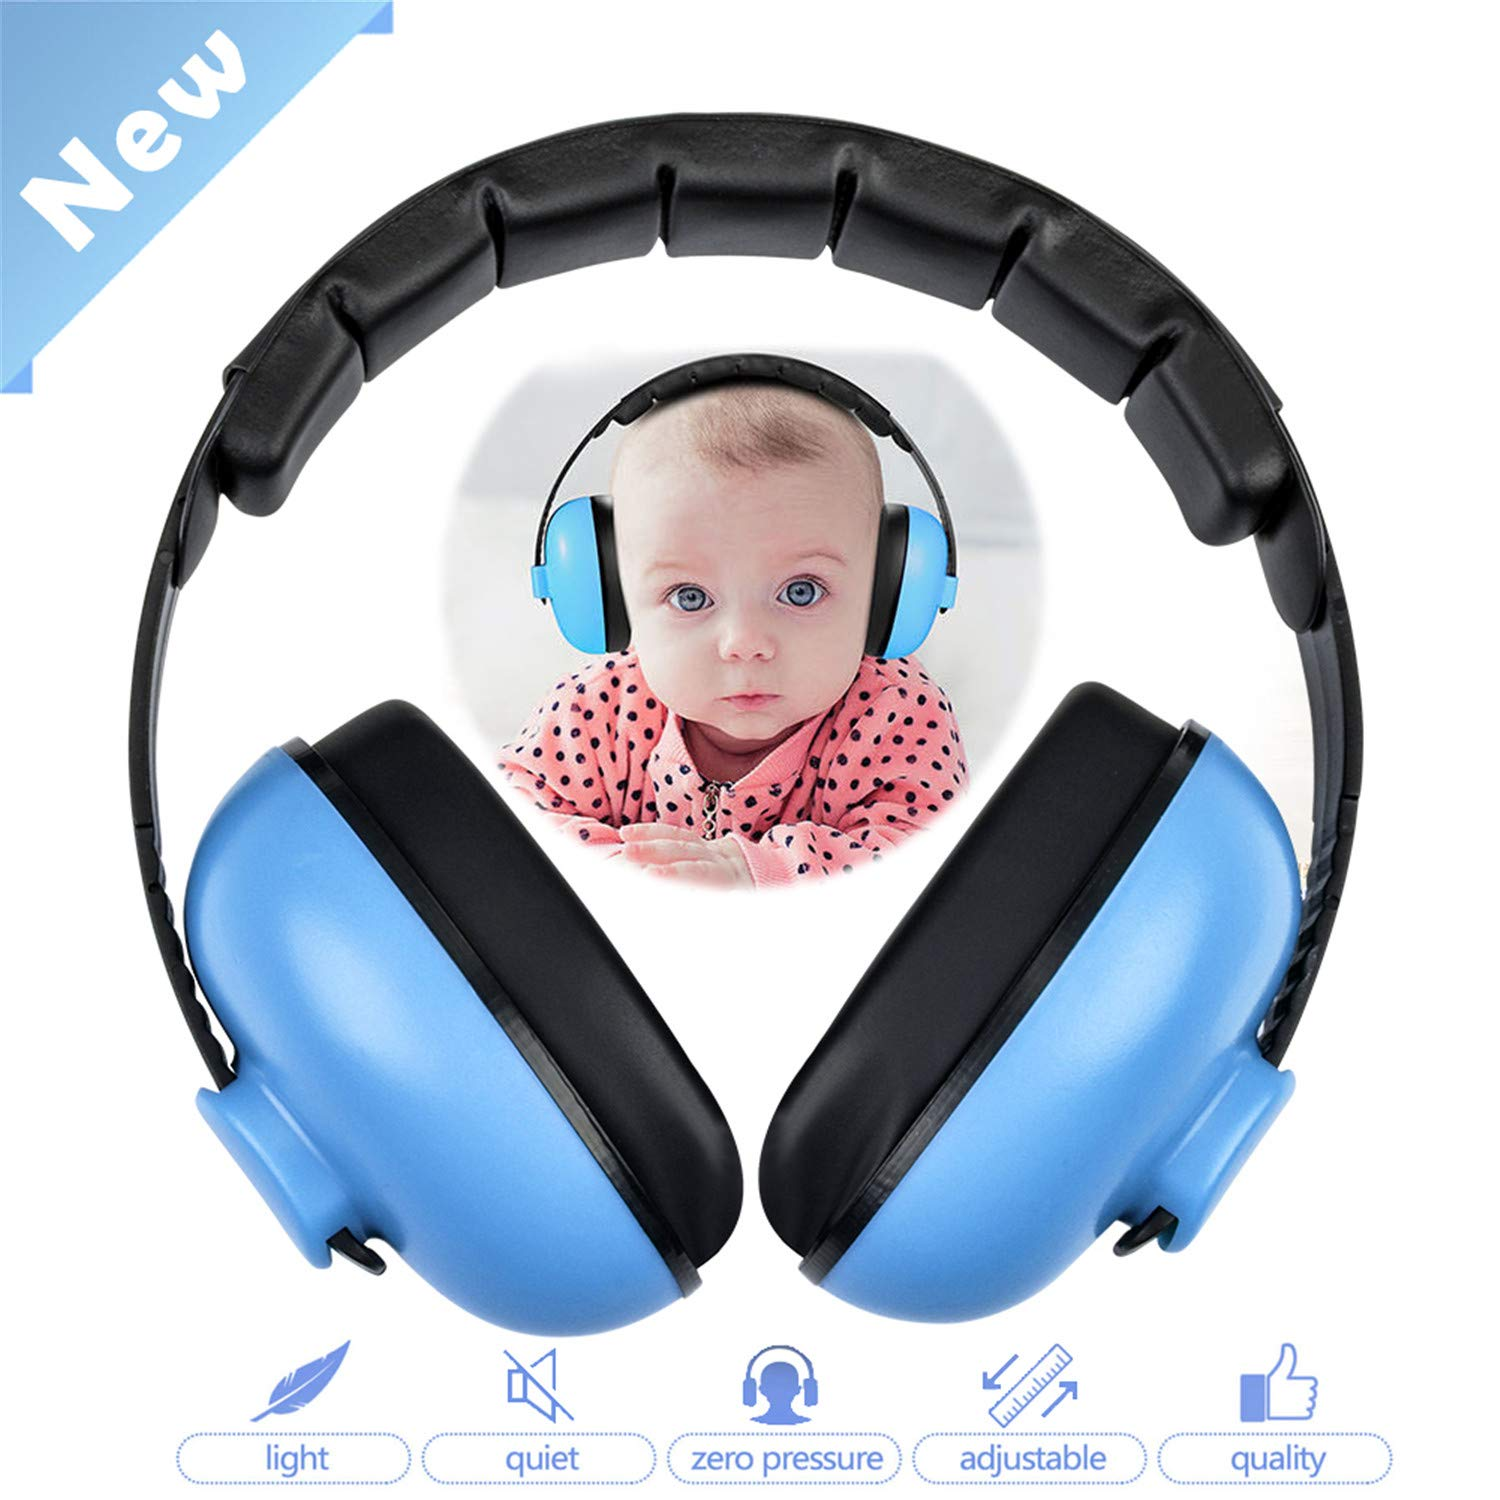 Baby Headphones,Baby Ear Protection,Noise Cancelling Headphones for Kids,Ear Noise Protection for Baby for 0-3 Years Babies,Toddlers,Infant